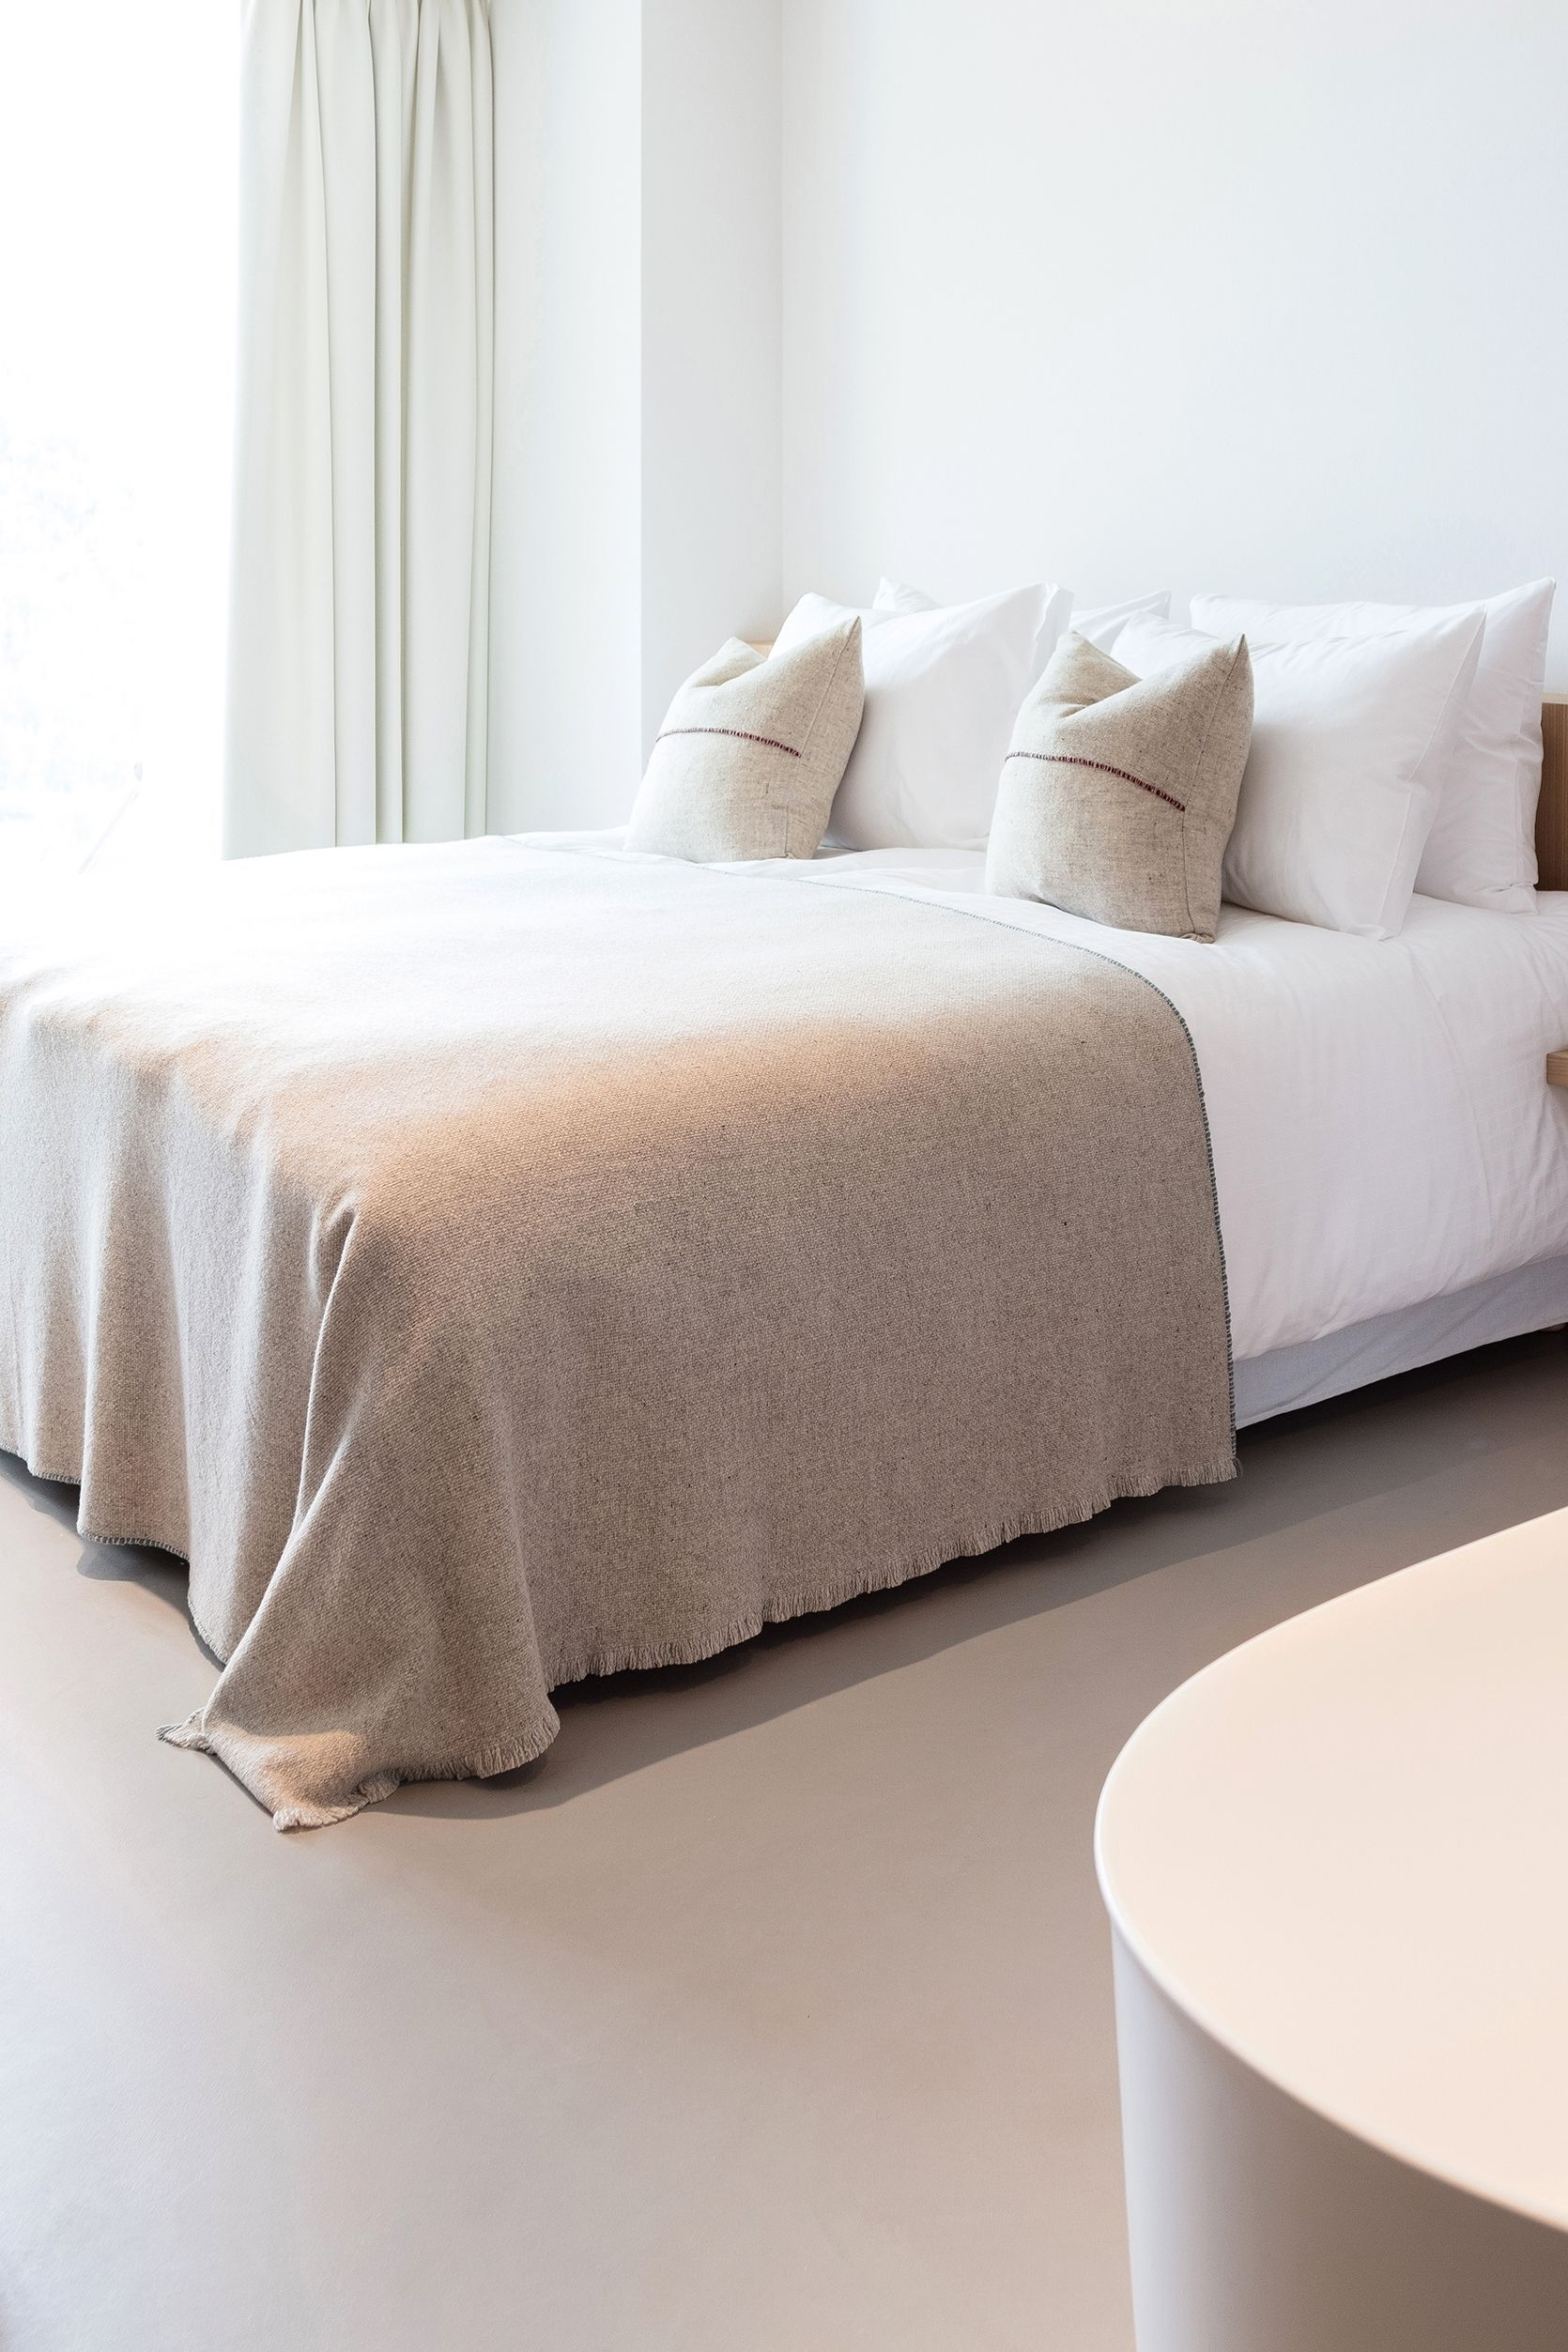 The bedroom interior design is eminently simple: floor-to-ceiling windows, bespoke carpentry, and a clean Alpine aesthetic that borrows from Italian design, the Danish principals of Hygge and a touch of sweet sophistication in the Japonesque detailing.  Schgaguler Hotel - Dolomites - Italy . . . #boutiquehotel #designhotel  #beautifulhotels #interiors #design #interior #interiorstyling #interiorinspo #interiorinspiration #eclecticinteriors #interiordesigner #pursuepretty #interiorstyle